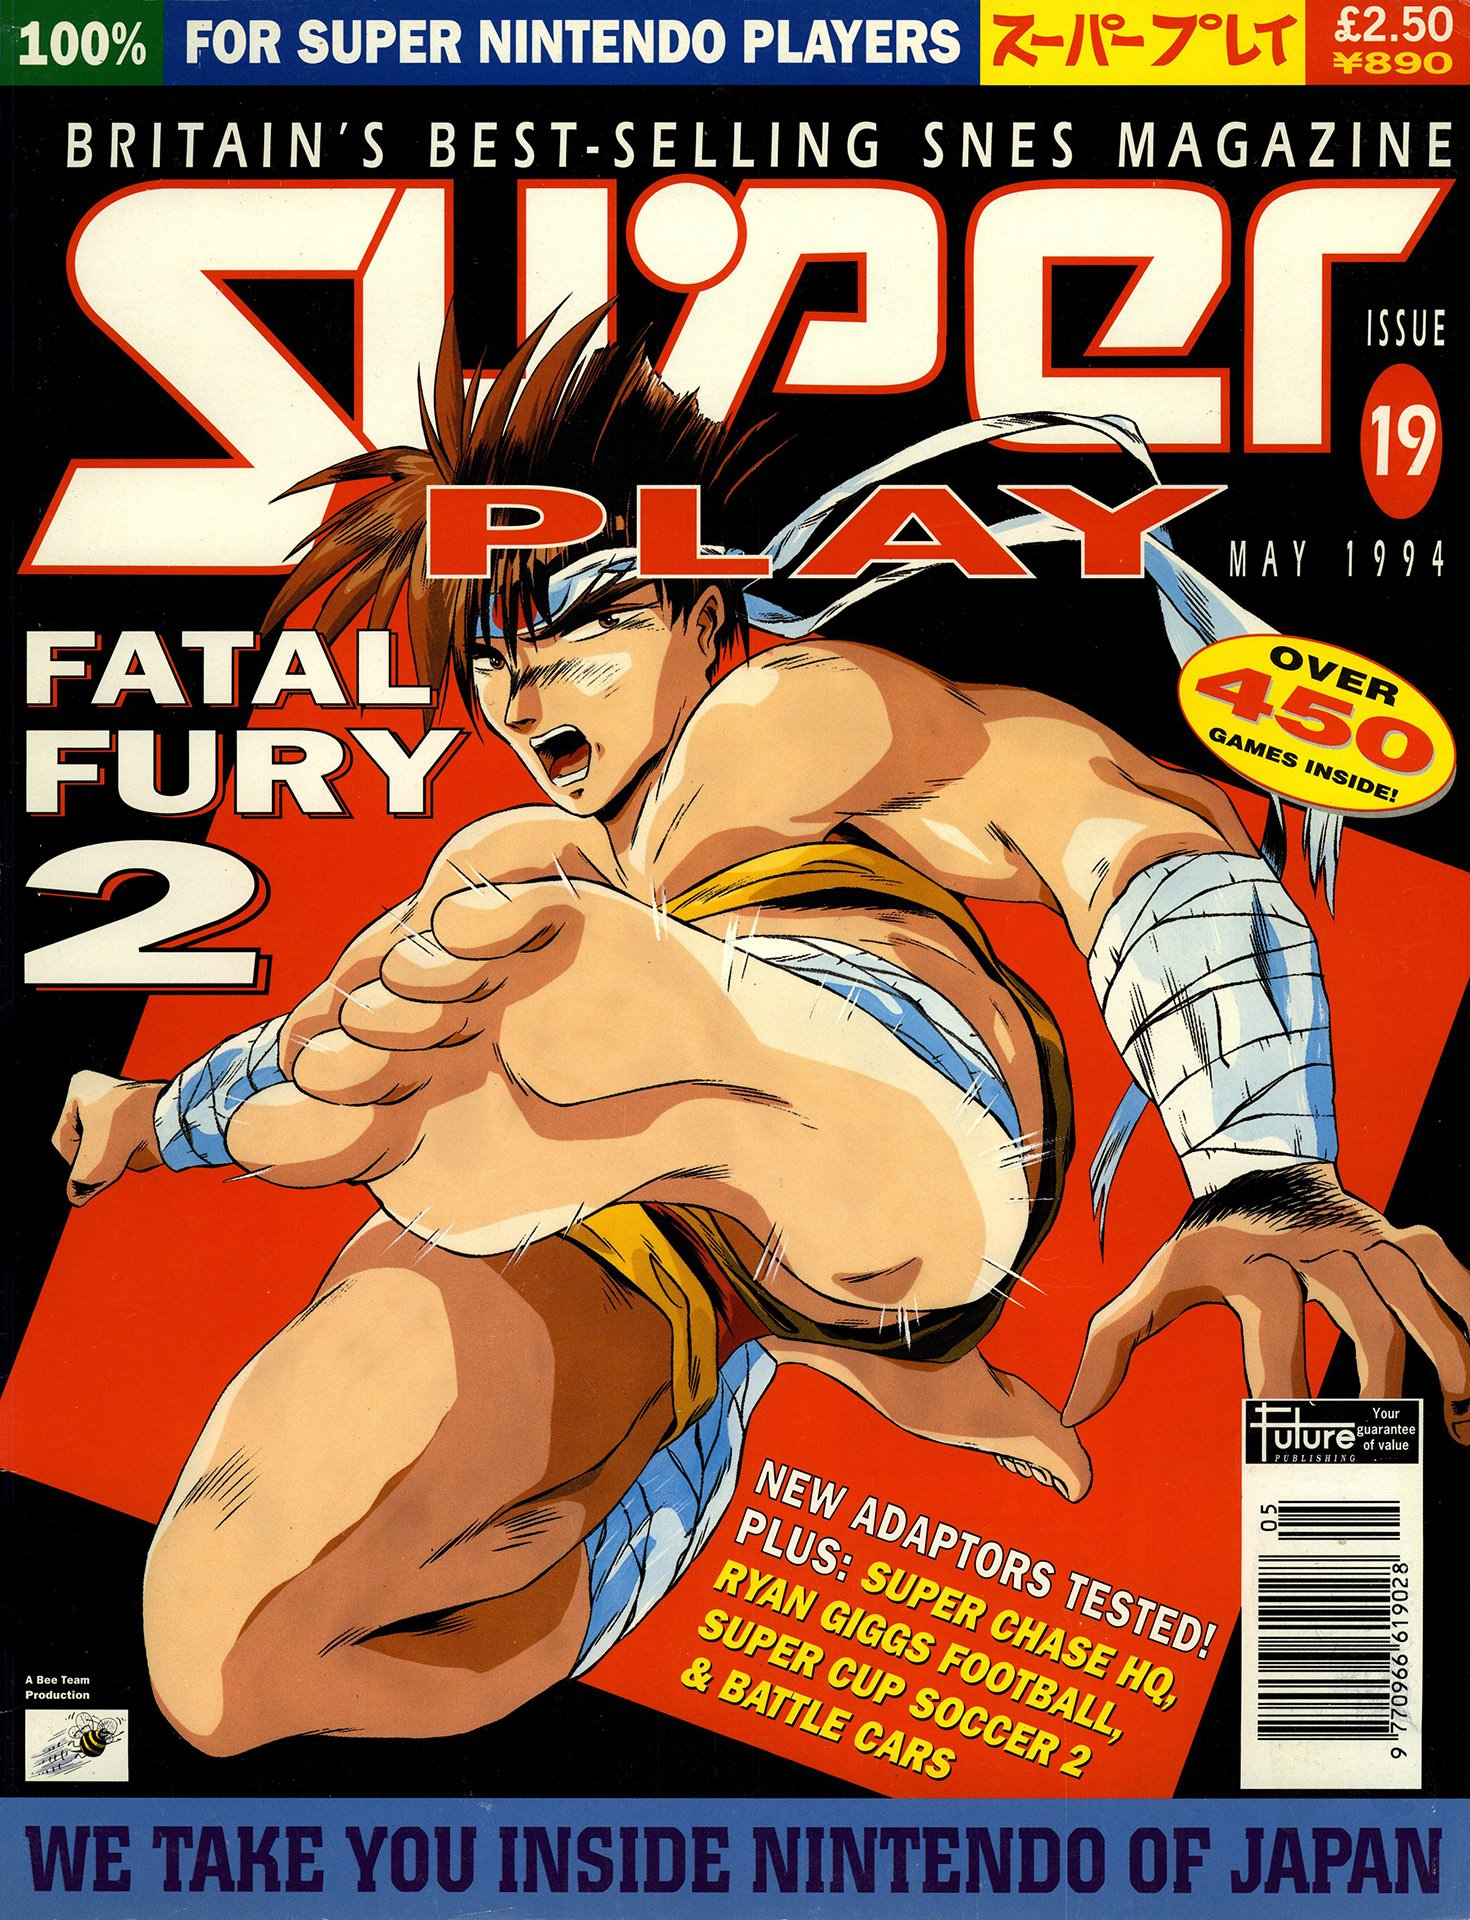 Super Play Issue 19 (May 1994)